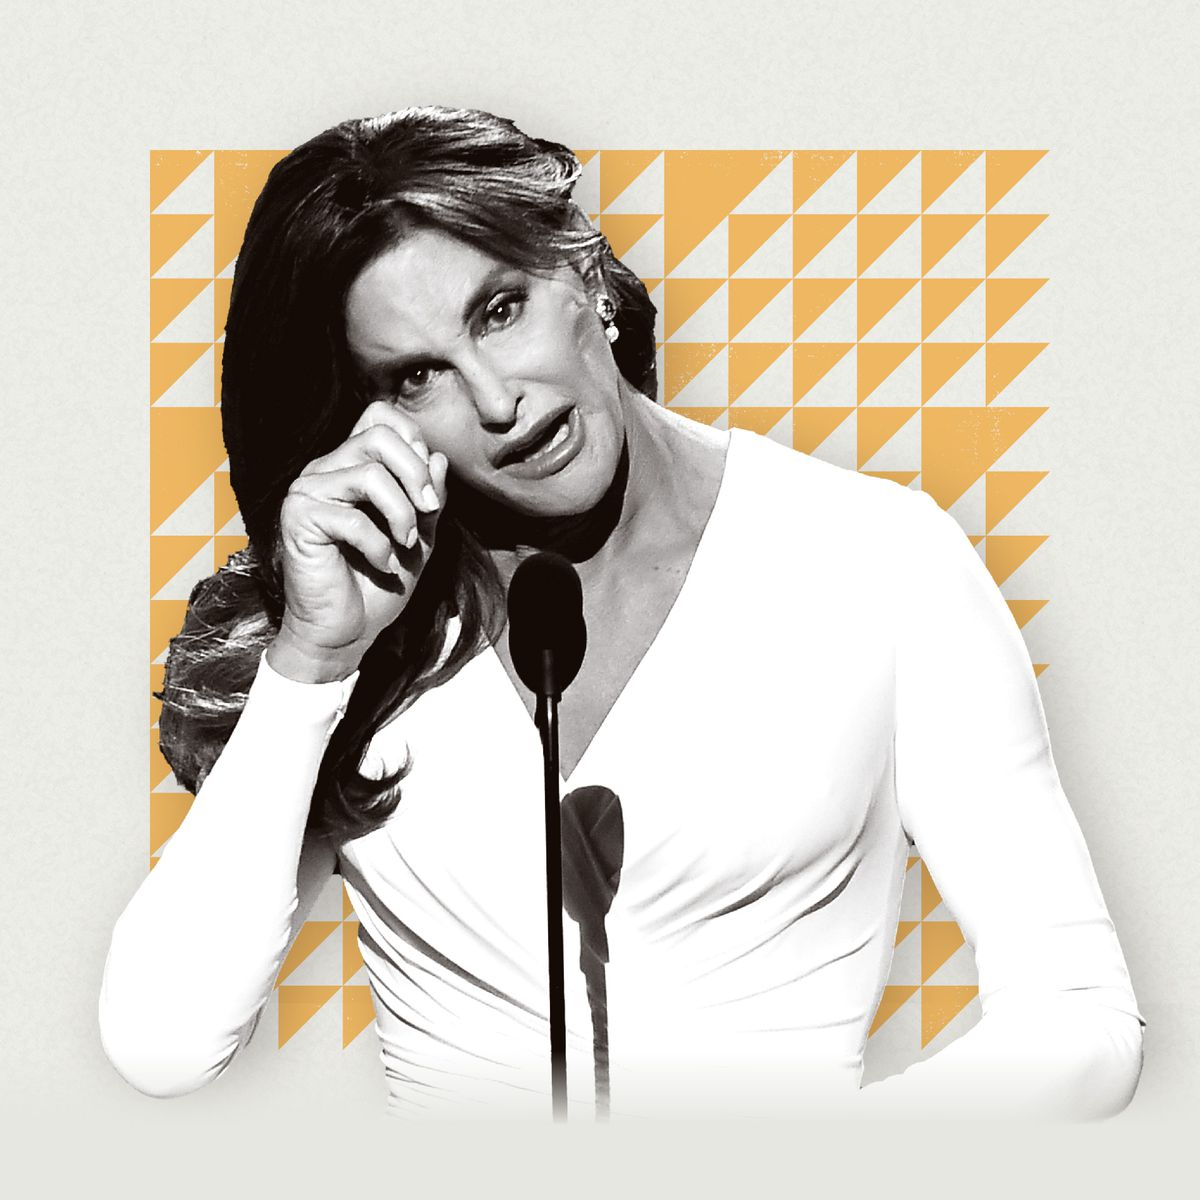 A photo illustration featuring Caitlyn Jenner wiping away a tear.